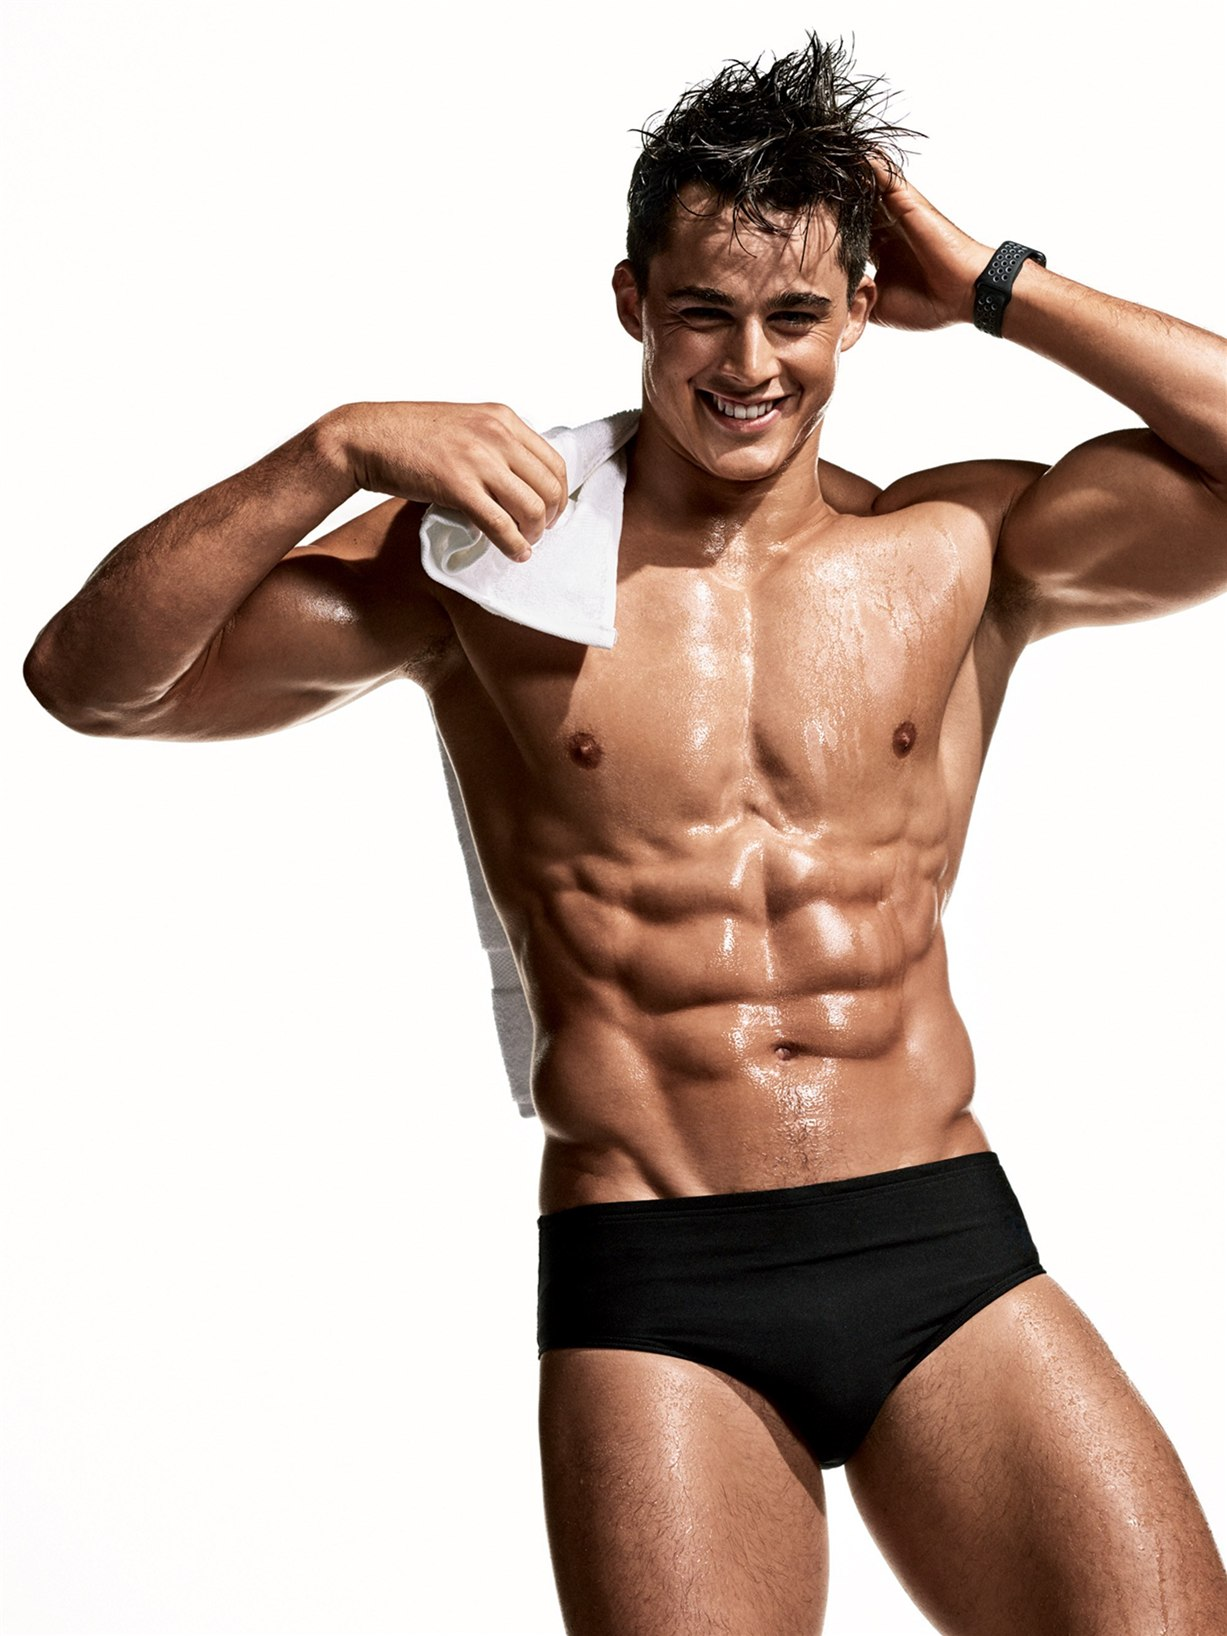 Пьетро Бозелли / Pietro Boselli by Tom Schirmacher - GQ US january 2017